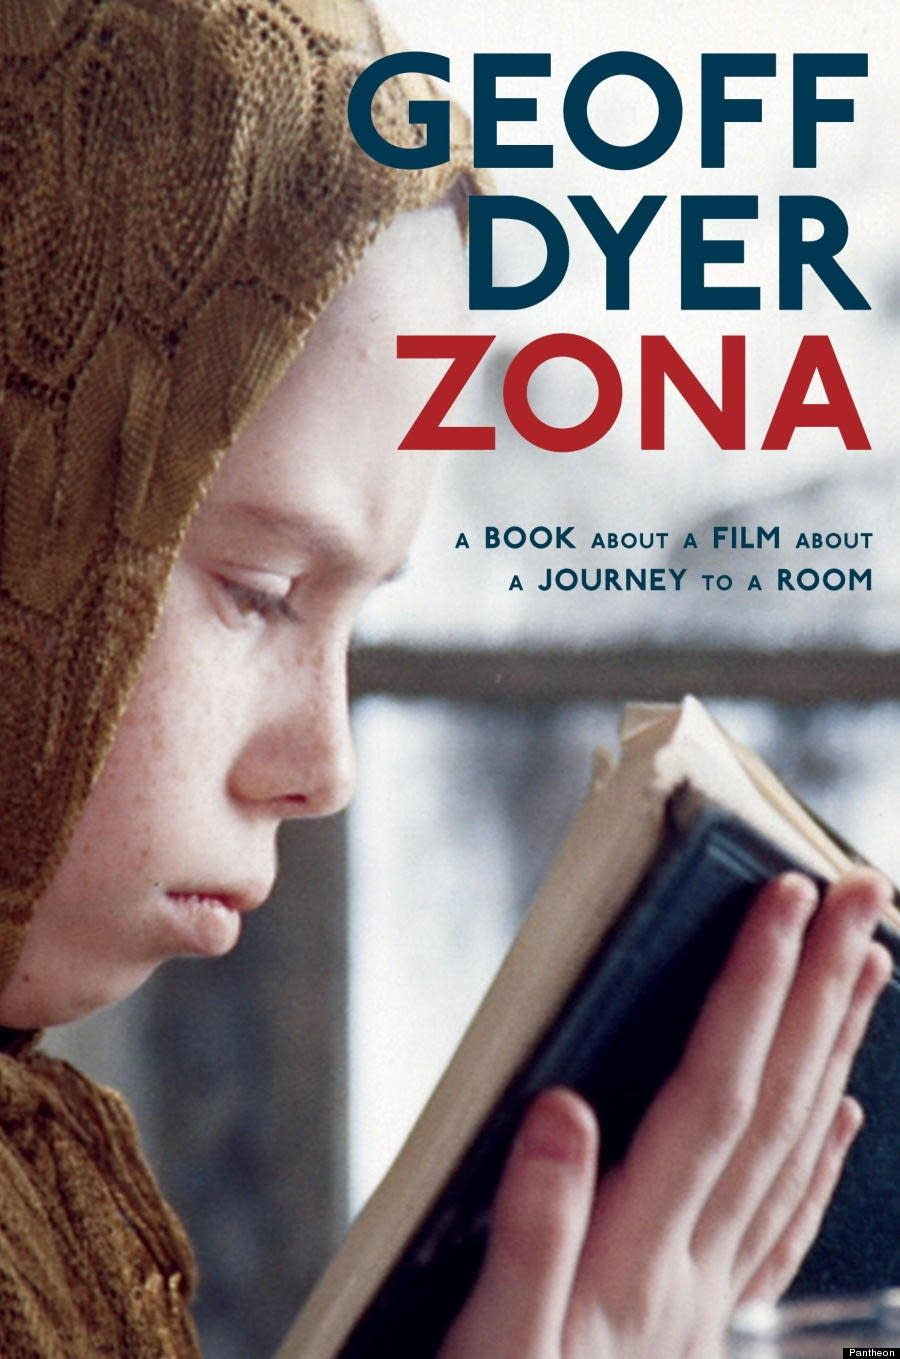 'Zona' by Geoff Dyer